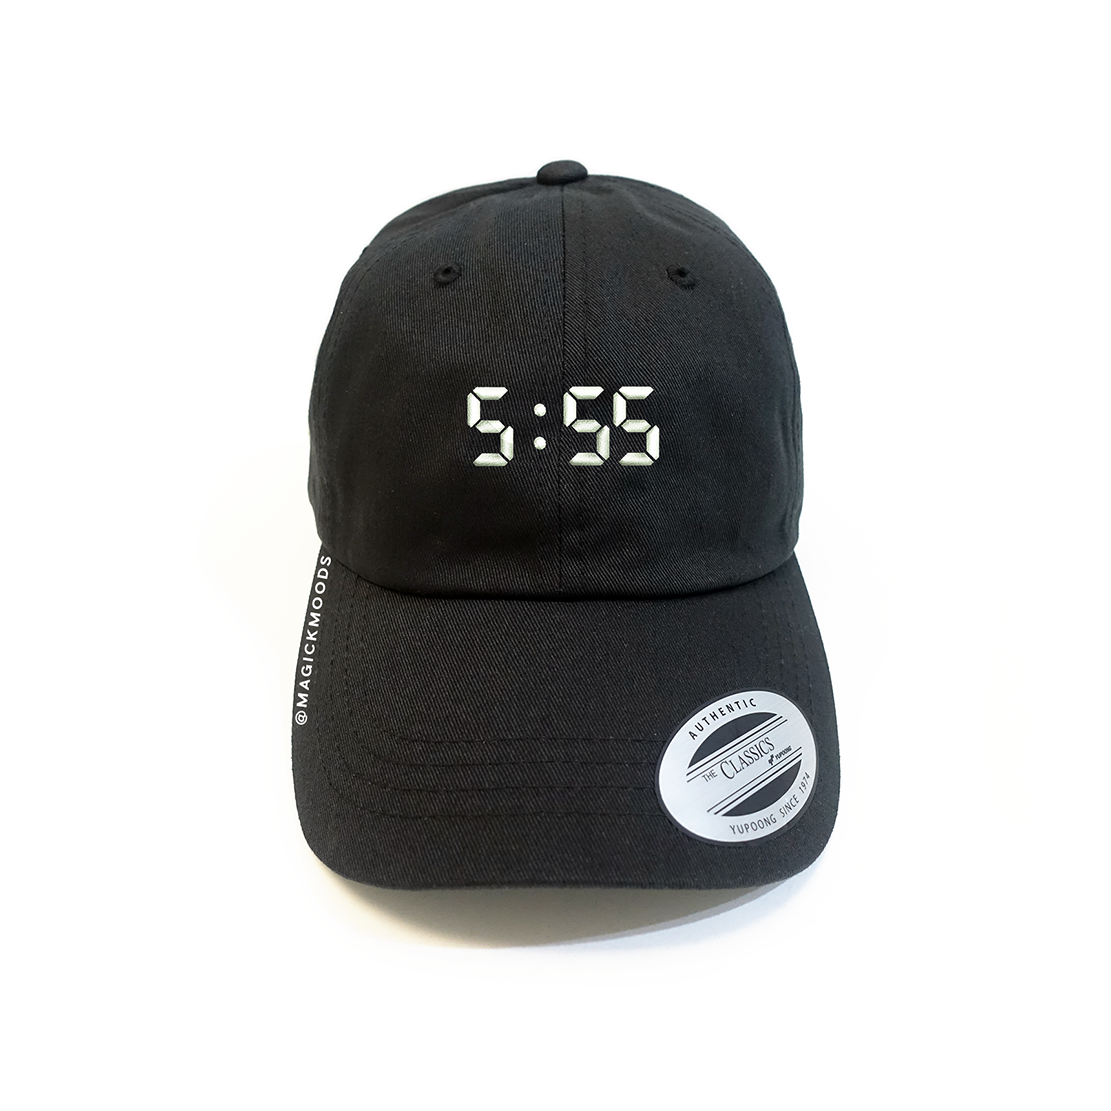 5:55 Dad Hat - Angel Numbers